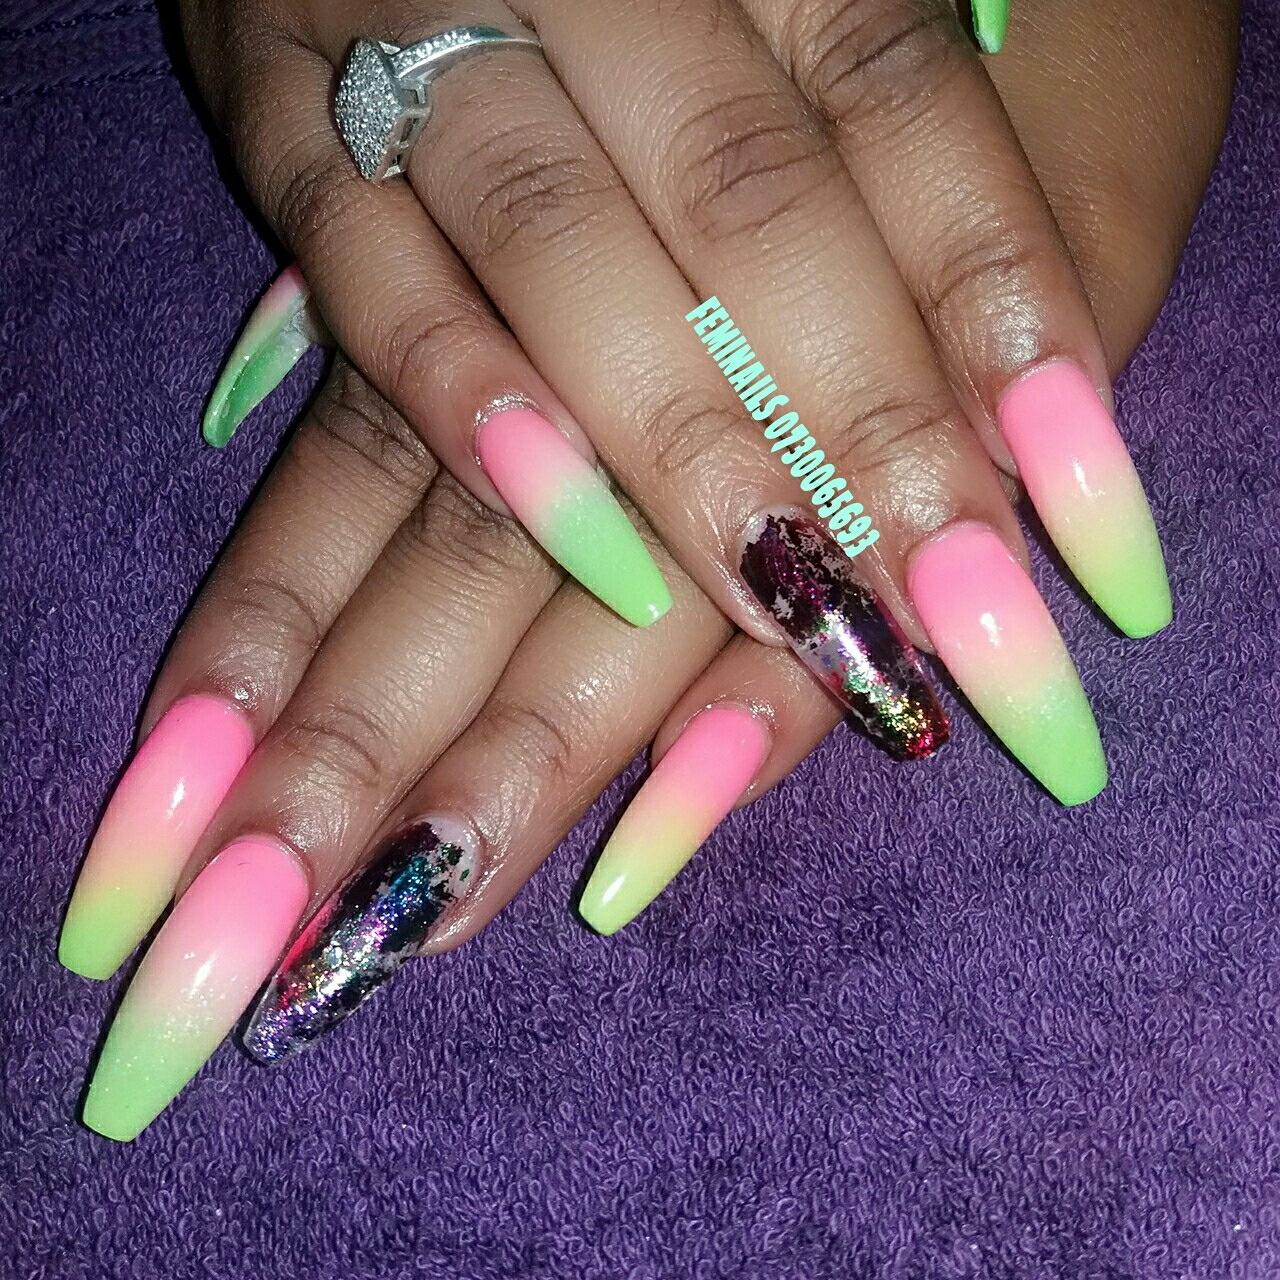 Acrylic and gel nails   Junk Mail